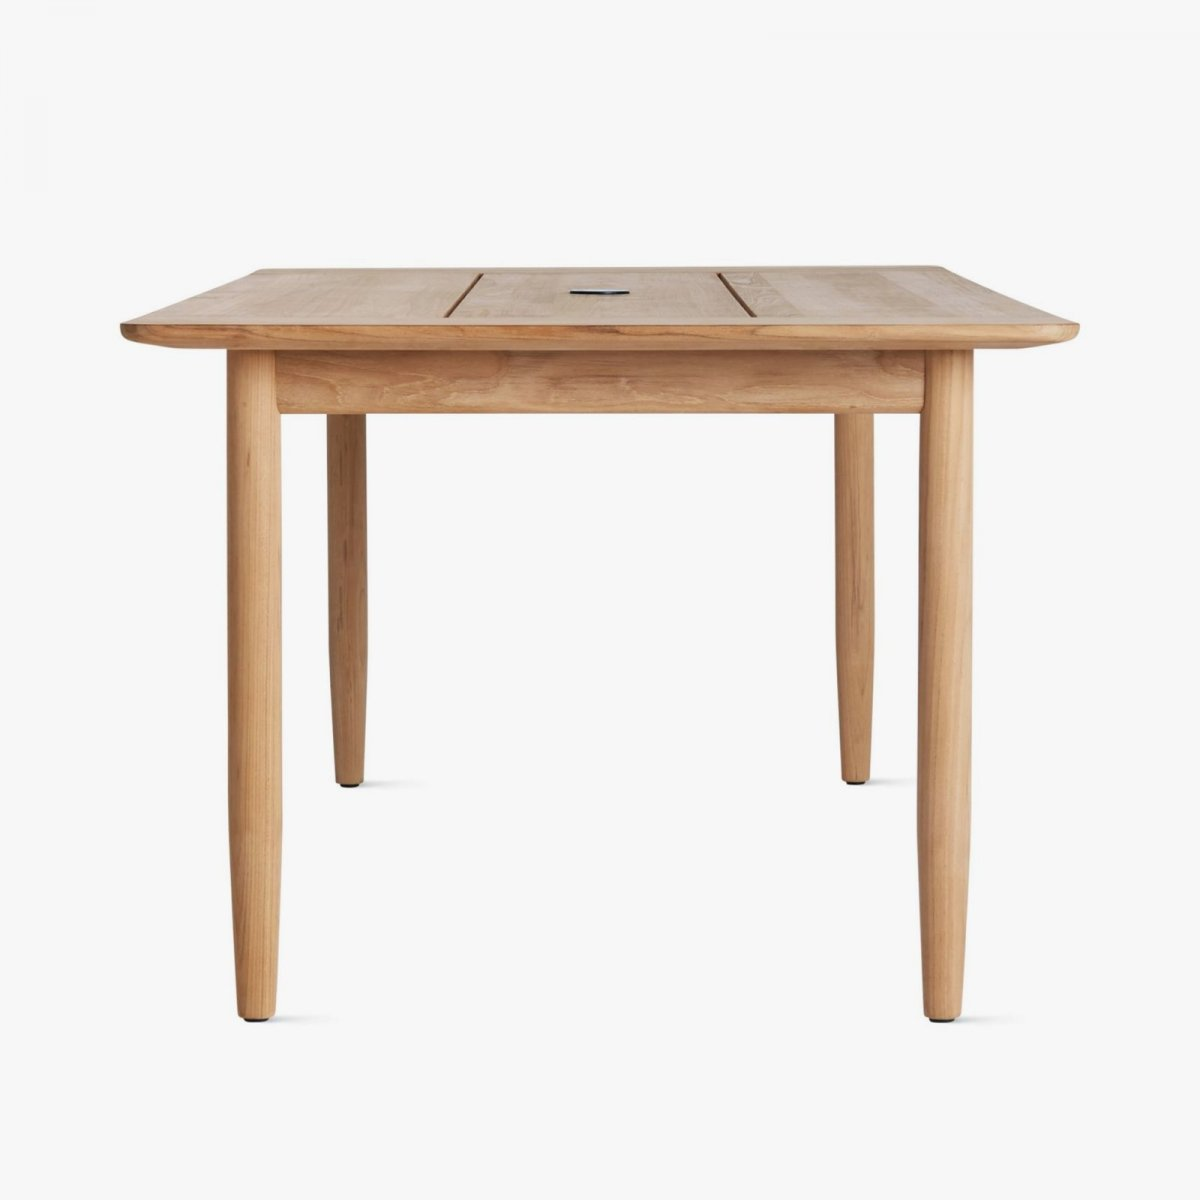 Terassi Dining Table, side view.